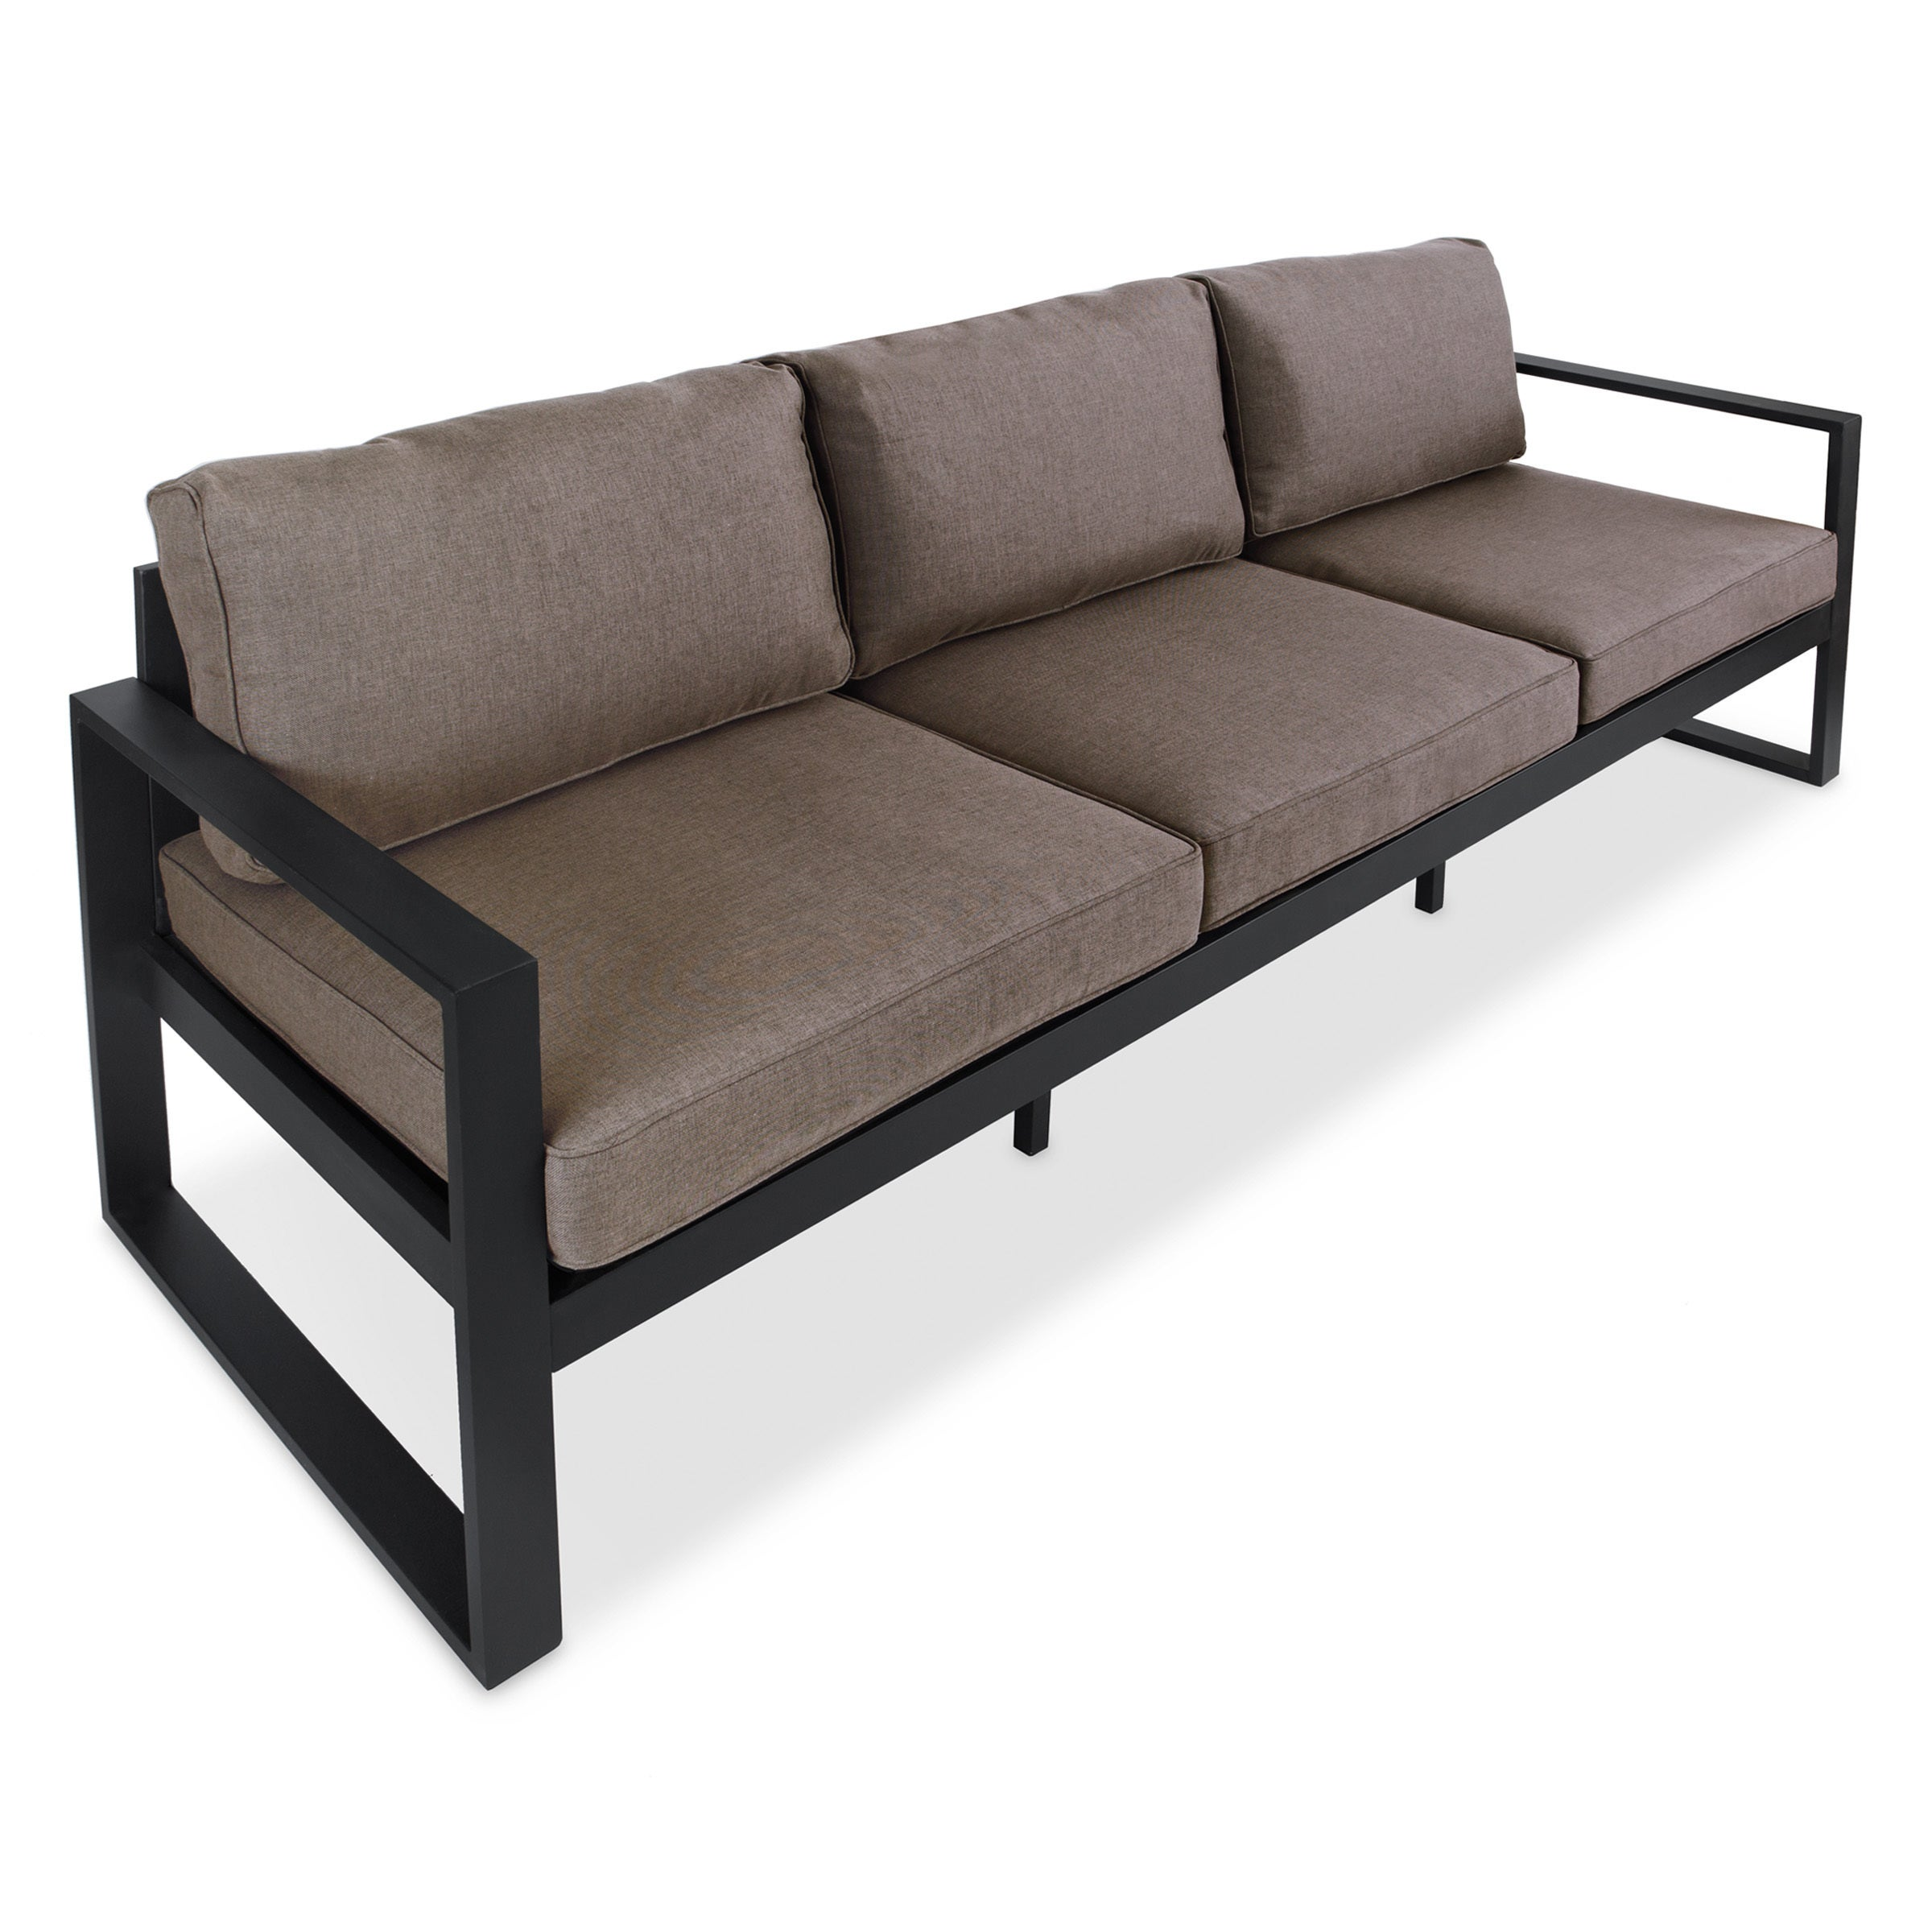 Shop Baltic 3 Seat Sofa Black By Real Flame   Free Shipping Today    Overstock.com   10367026